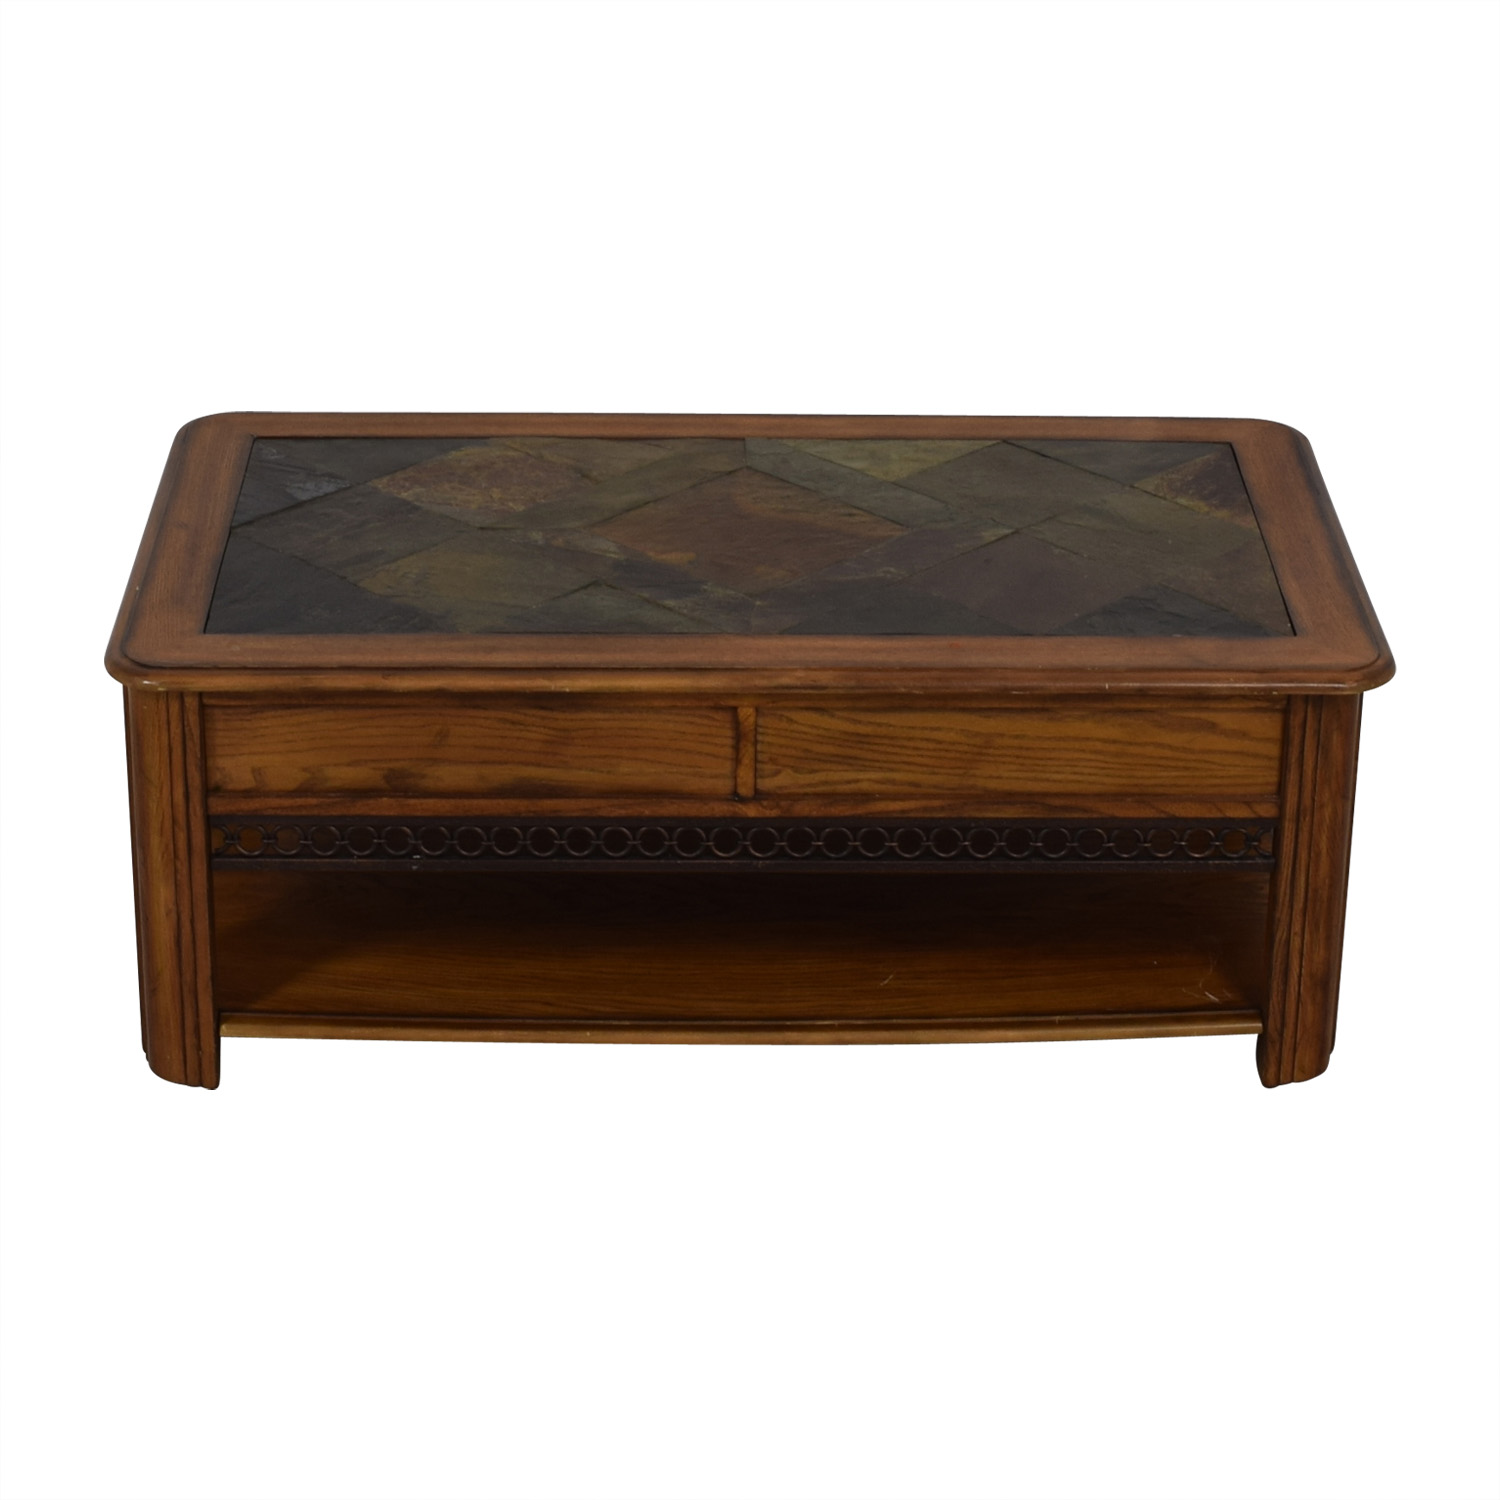 shop Raymour & Flanigan Lift Top Wood Coffee Table Raymour & Flanigan Coffee Tables